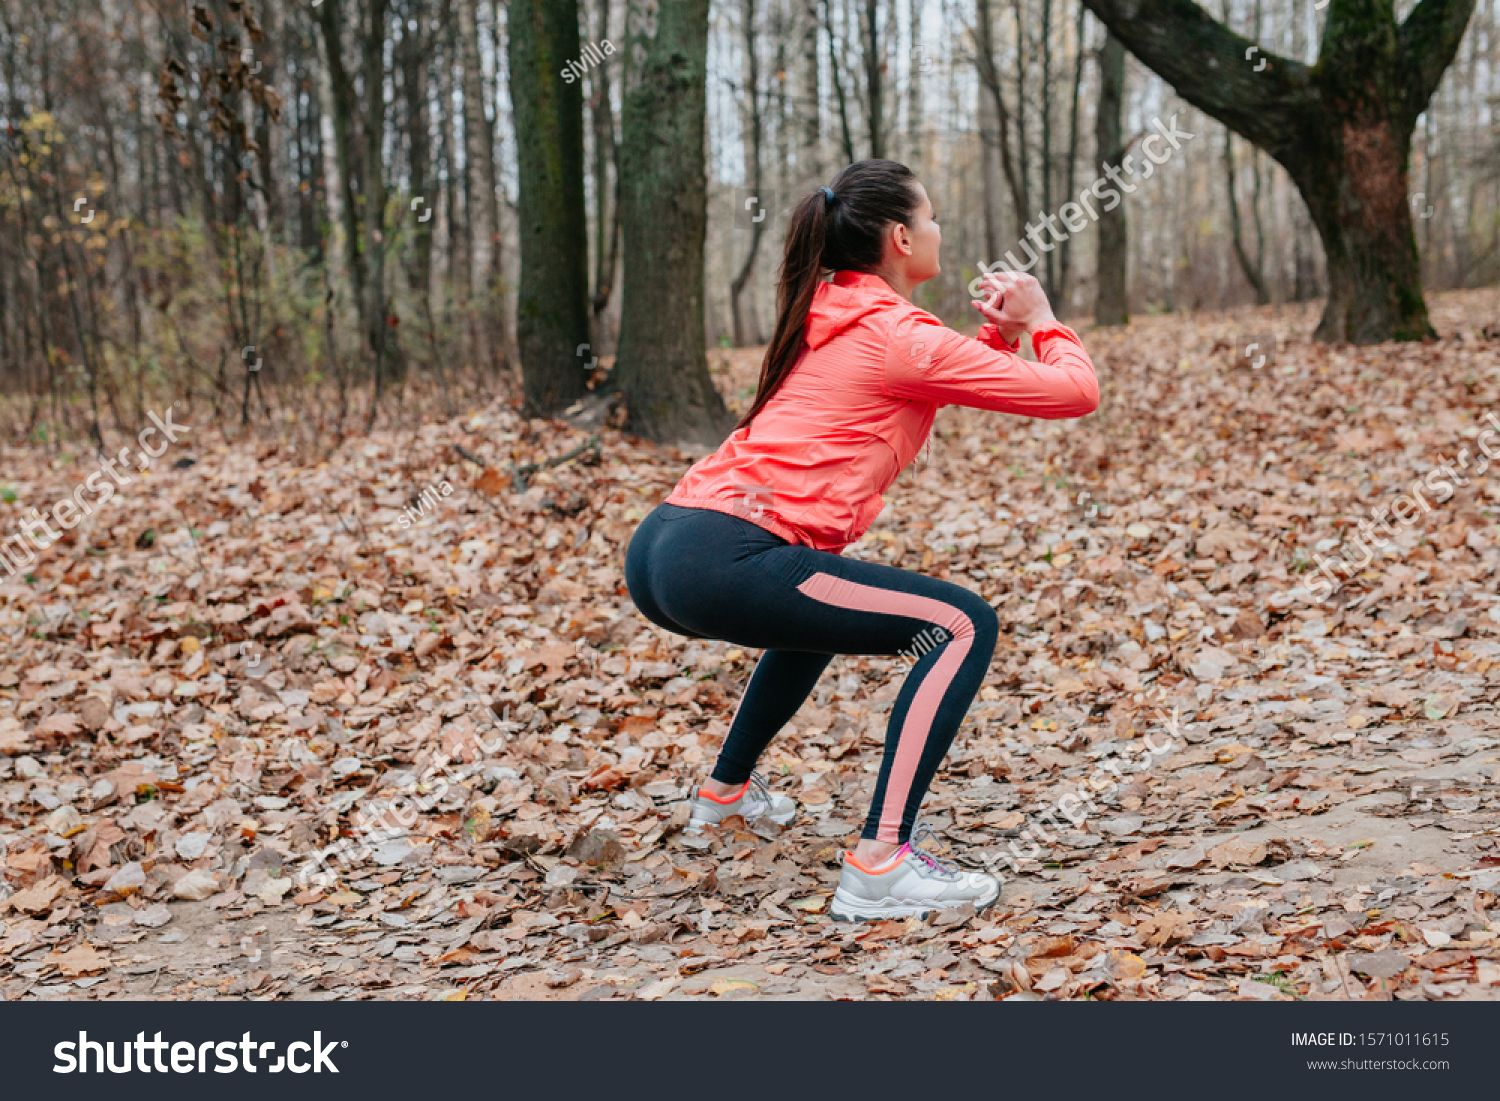 Young woman do squats outdoor on autumn leaves at the park. ,